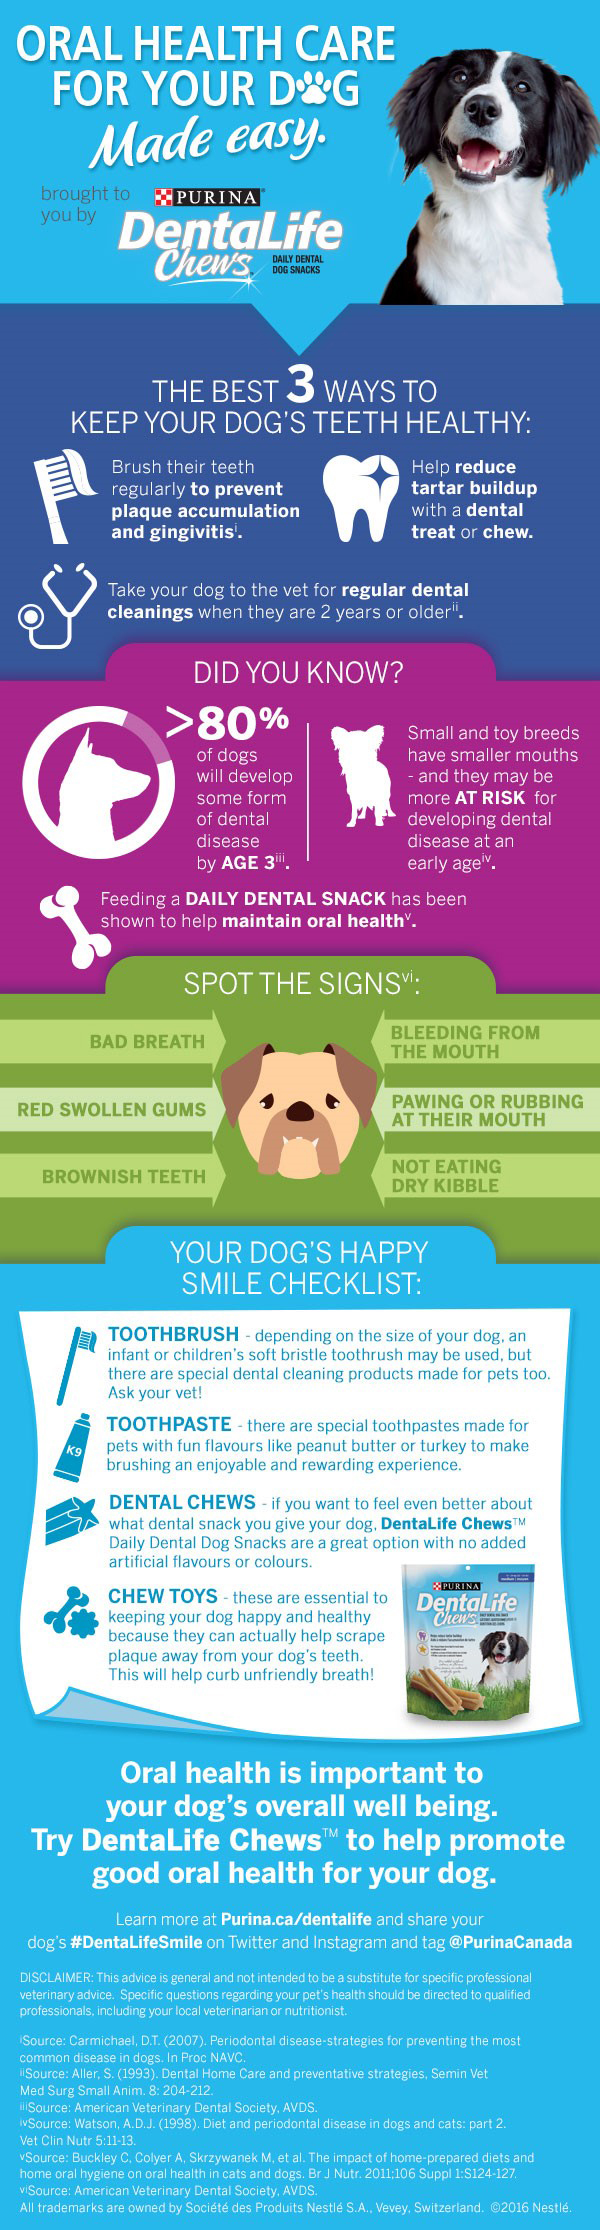 dog oral health infographic